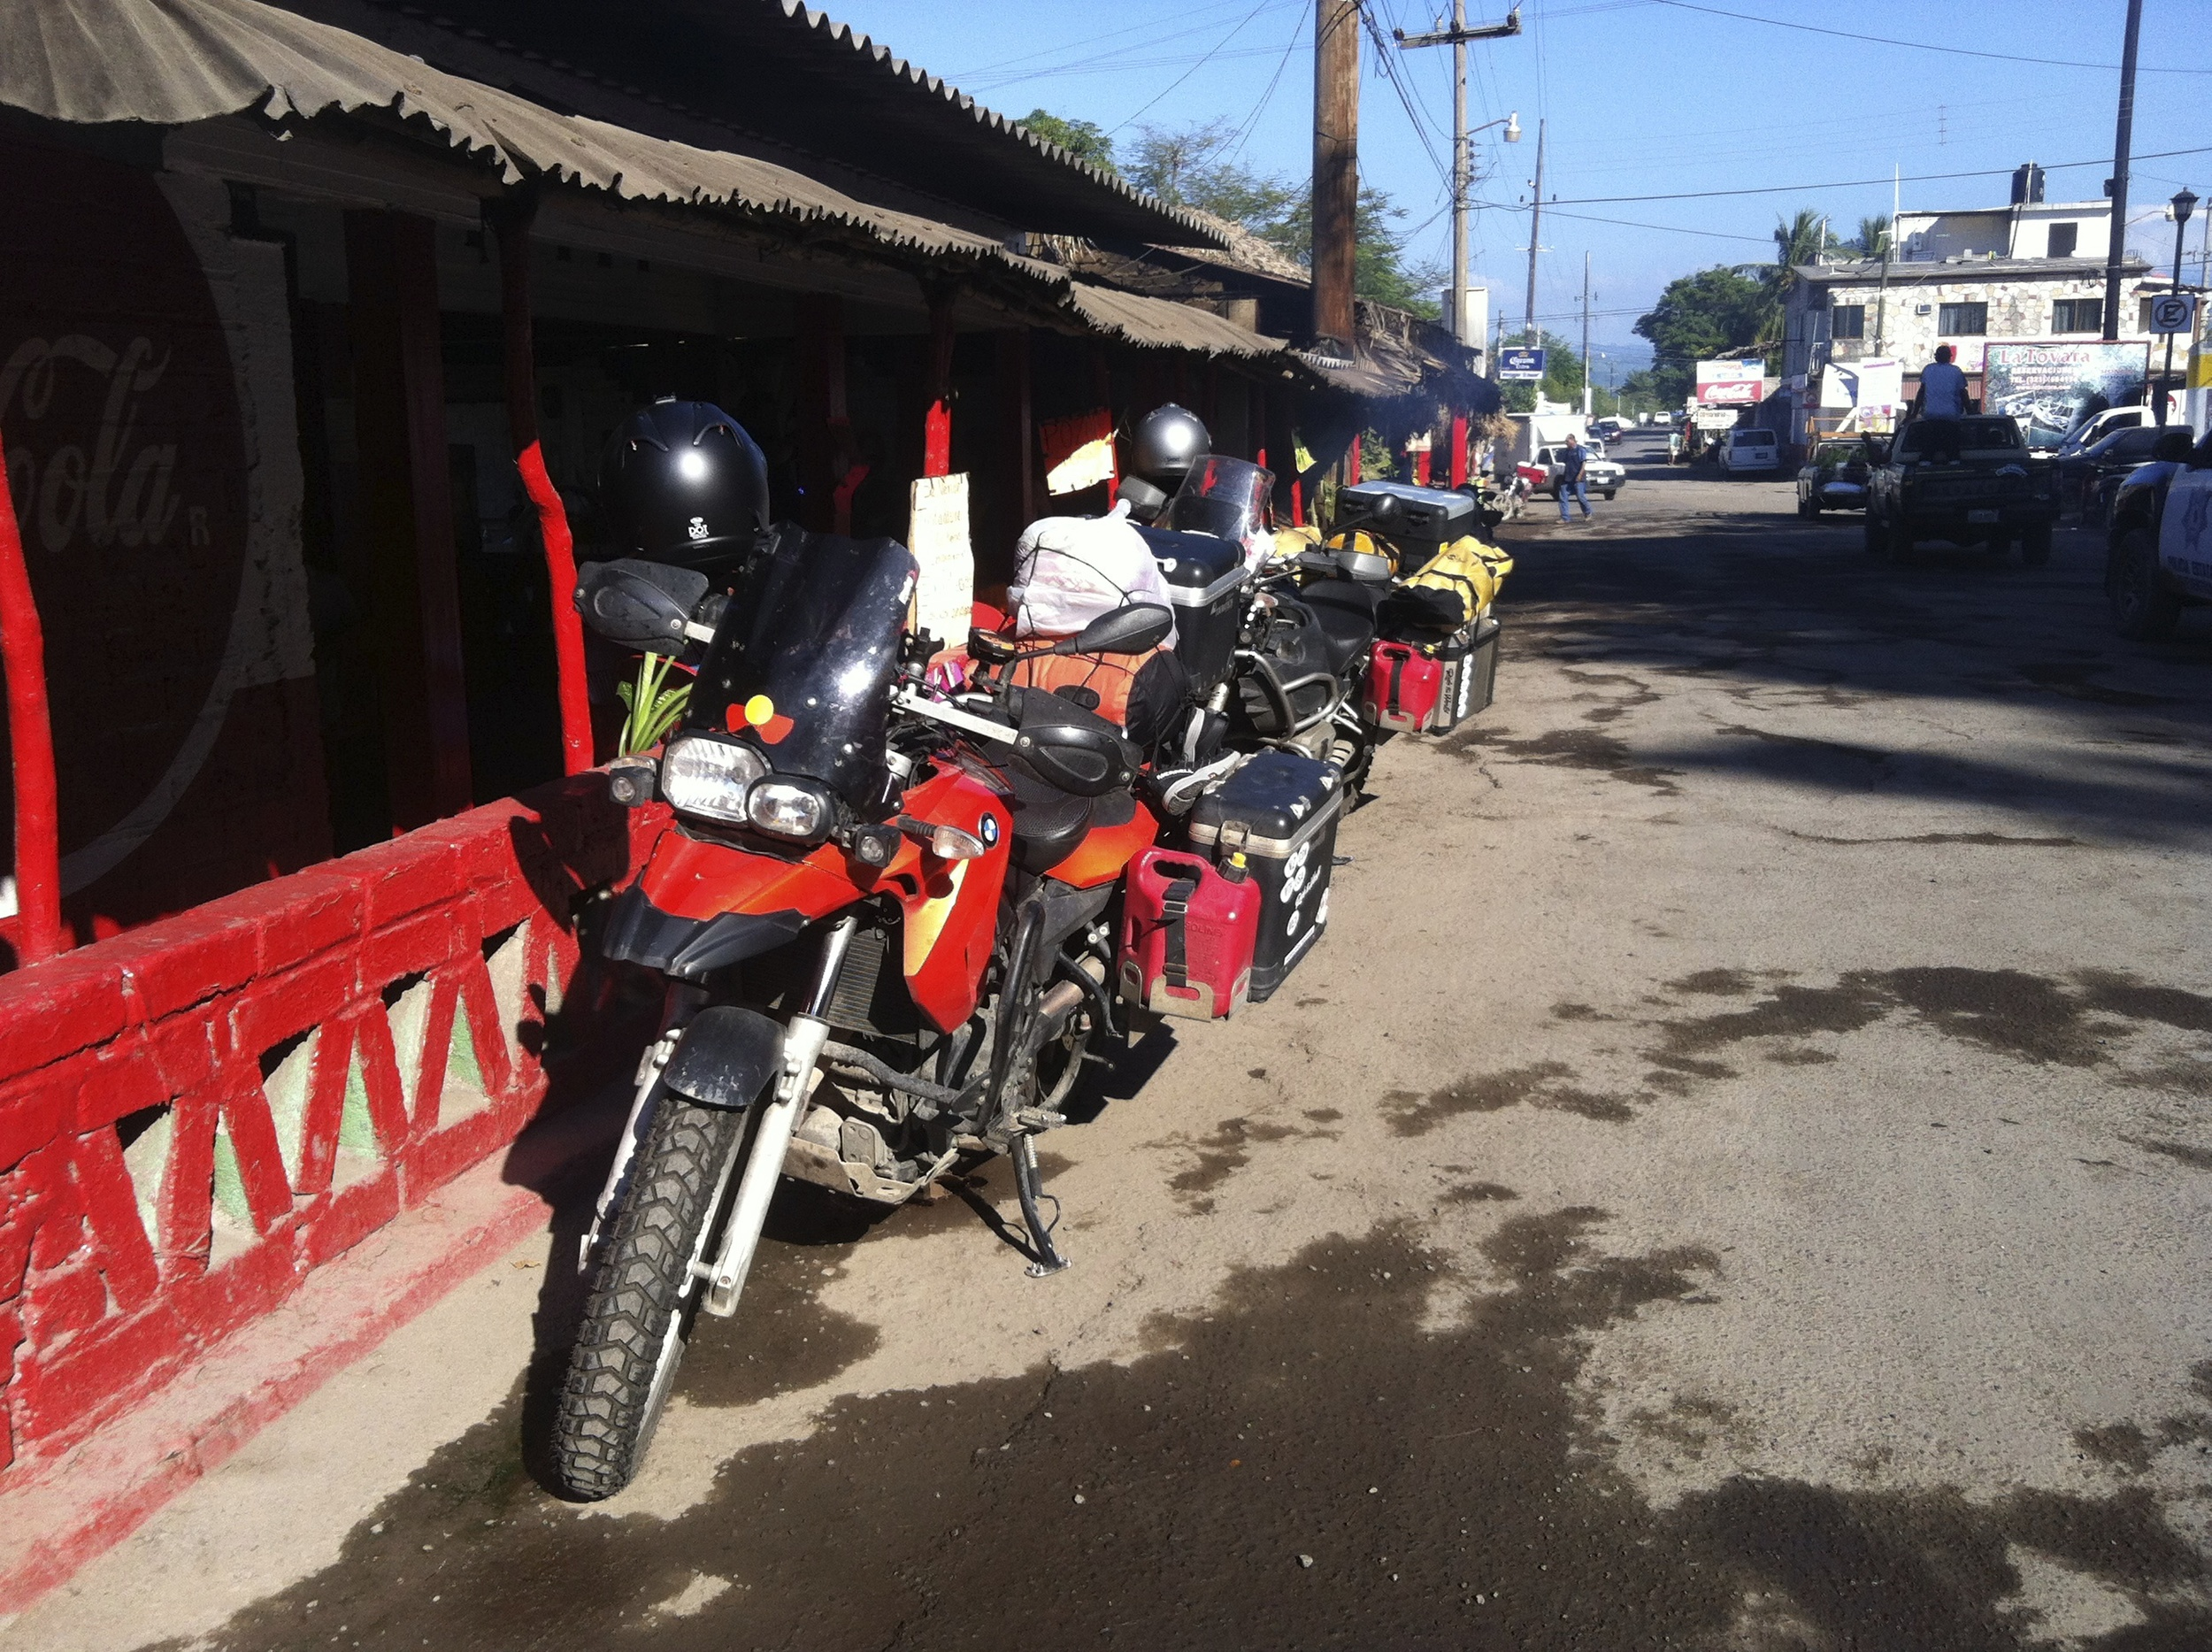 Stopping for a late lunch at the entrance to the San Blas township where the smell of fresh marlin bbq'n fills the air.